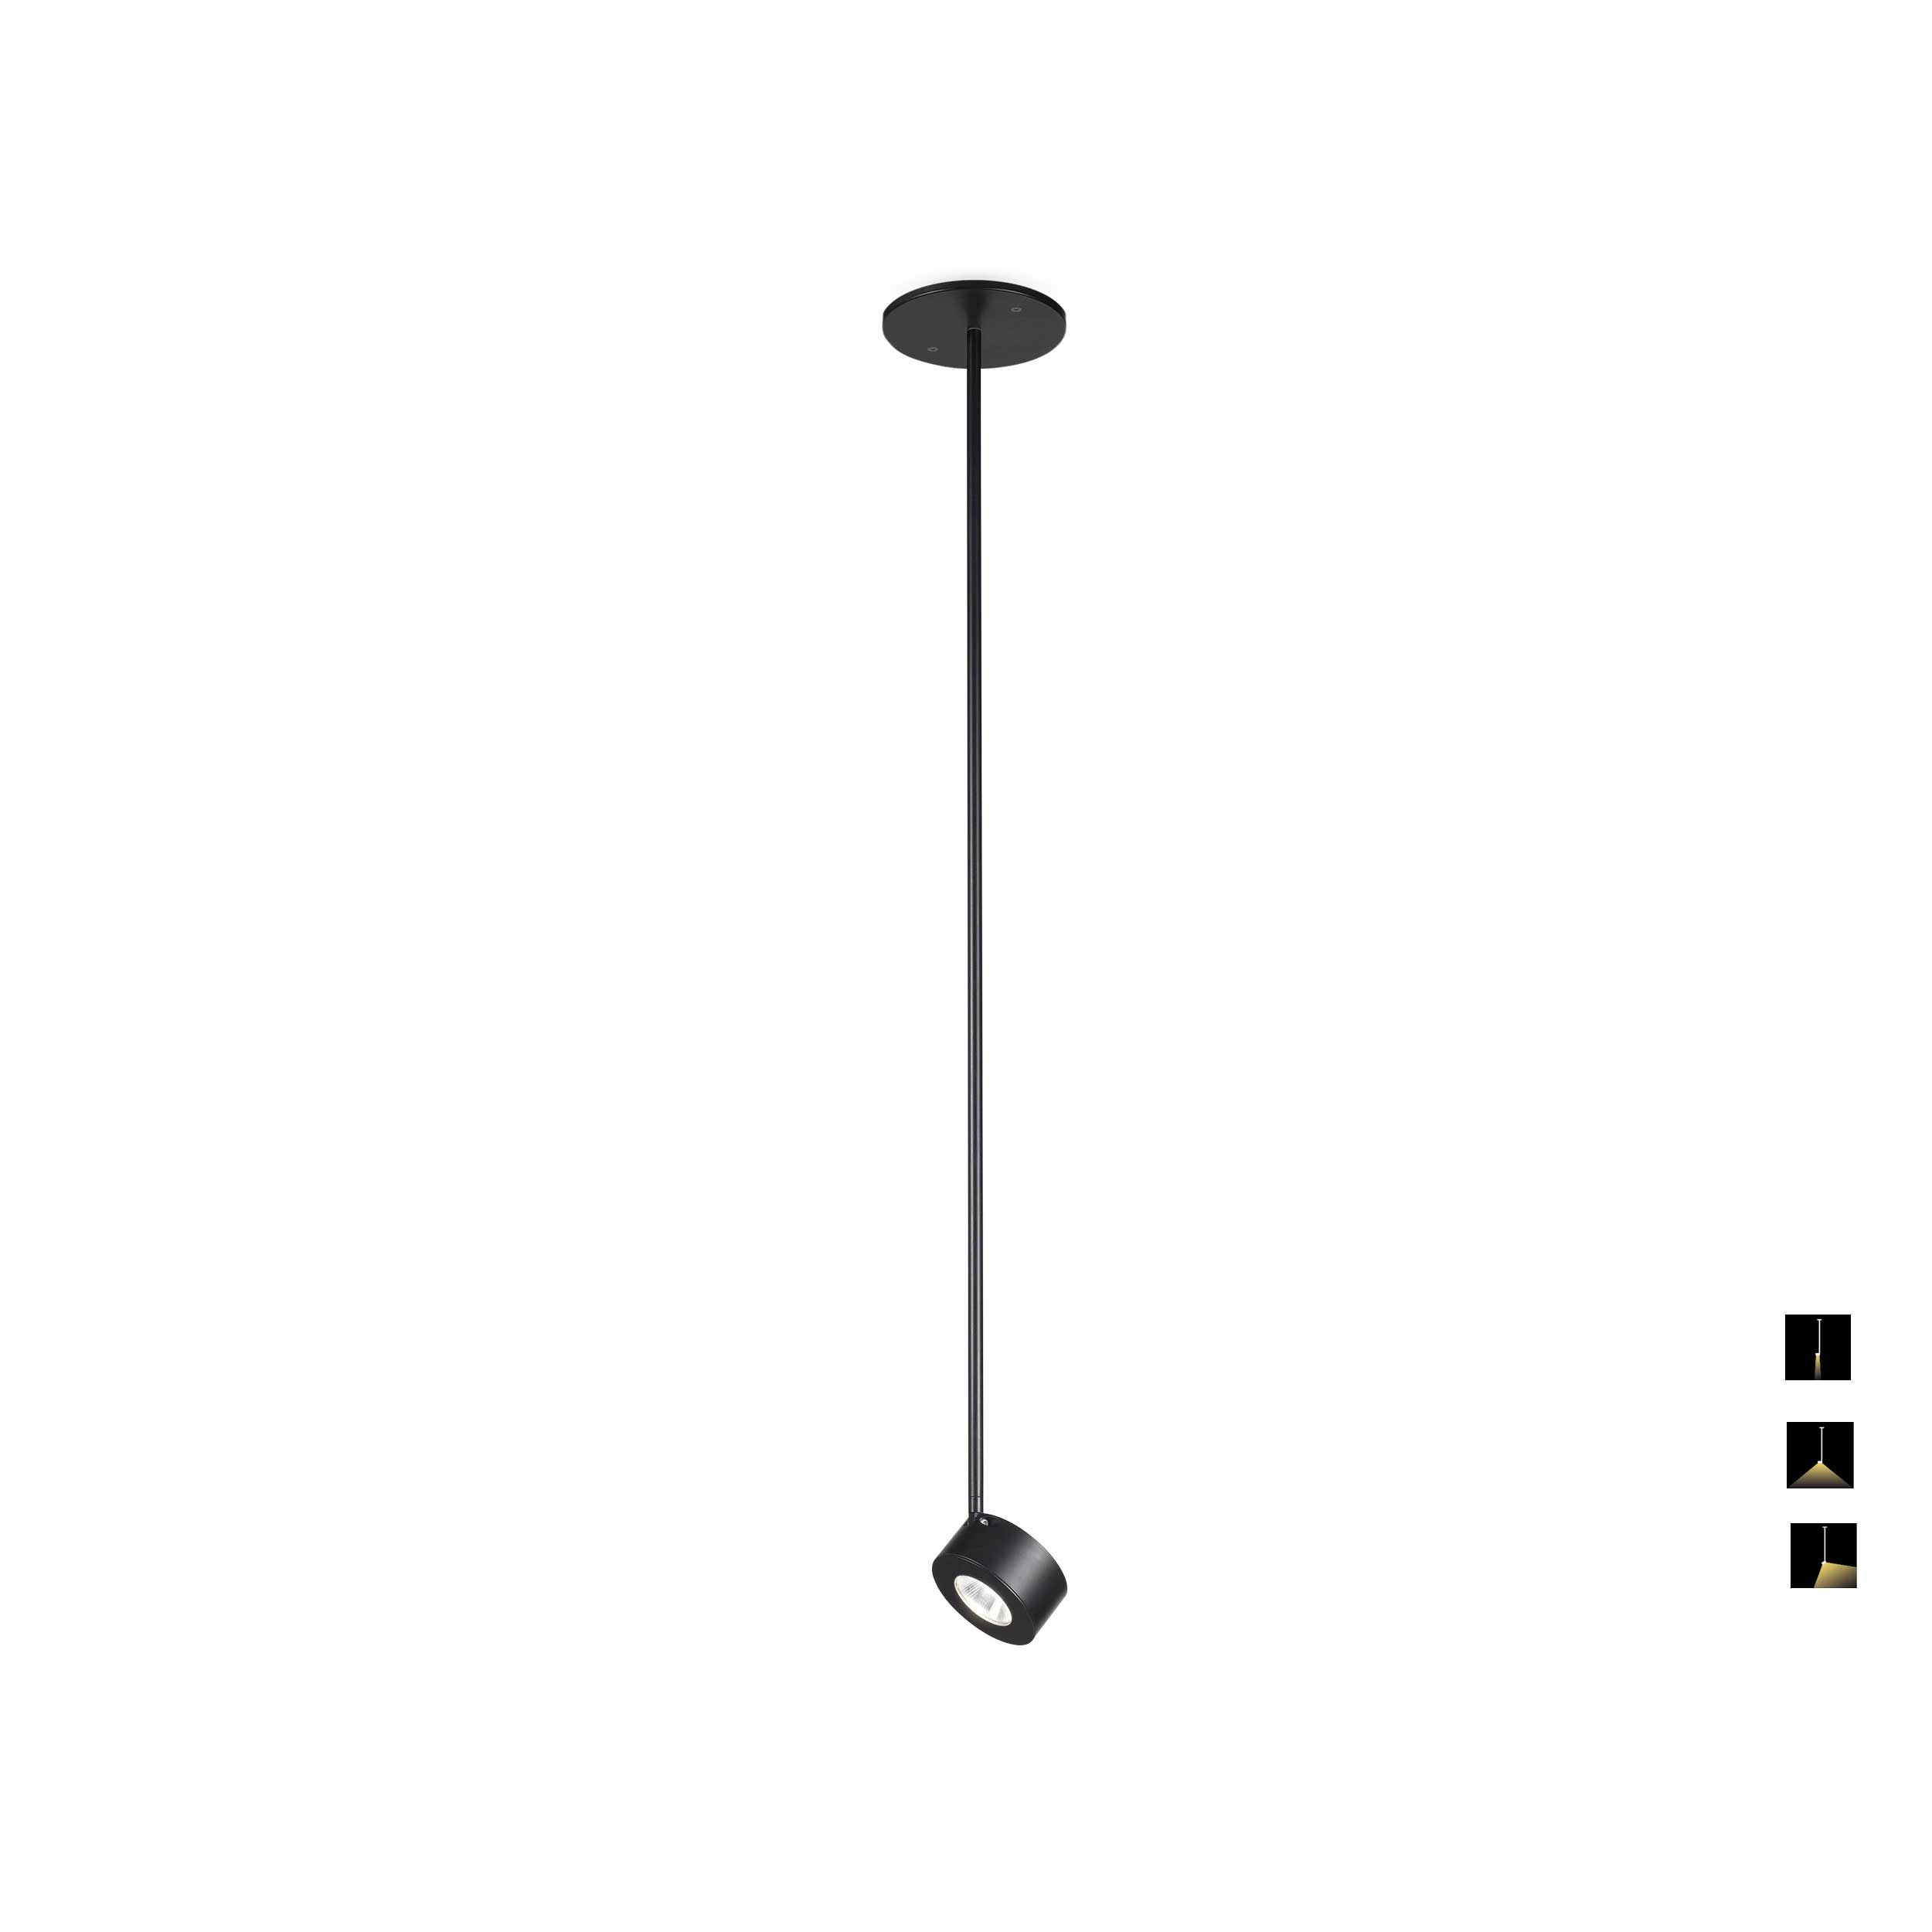 Spot Led Favilla Adjustable Spot Pendant By Axo Light K21051041125